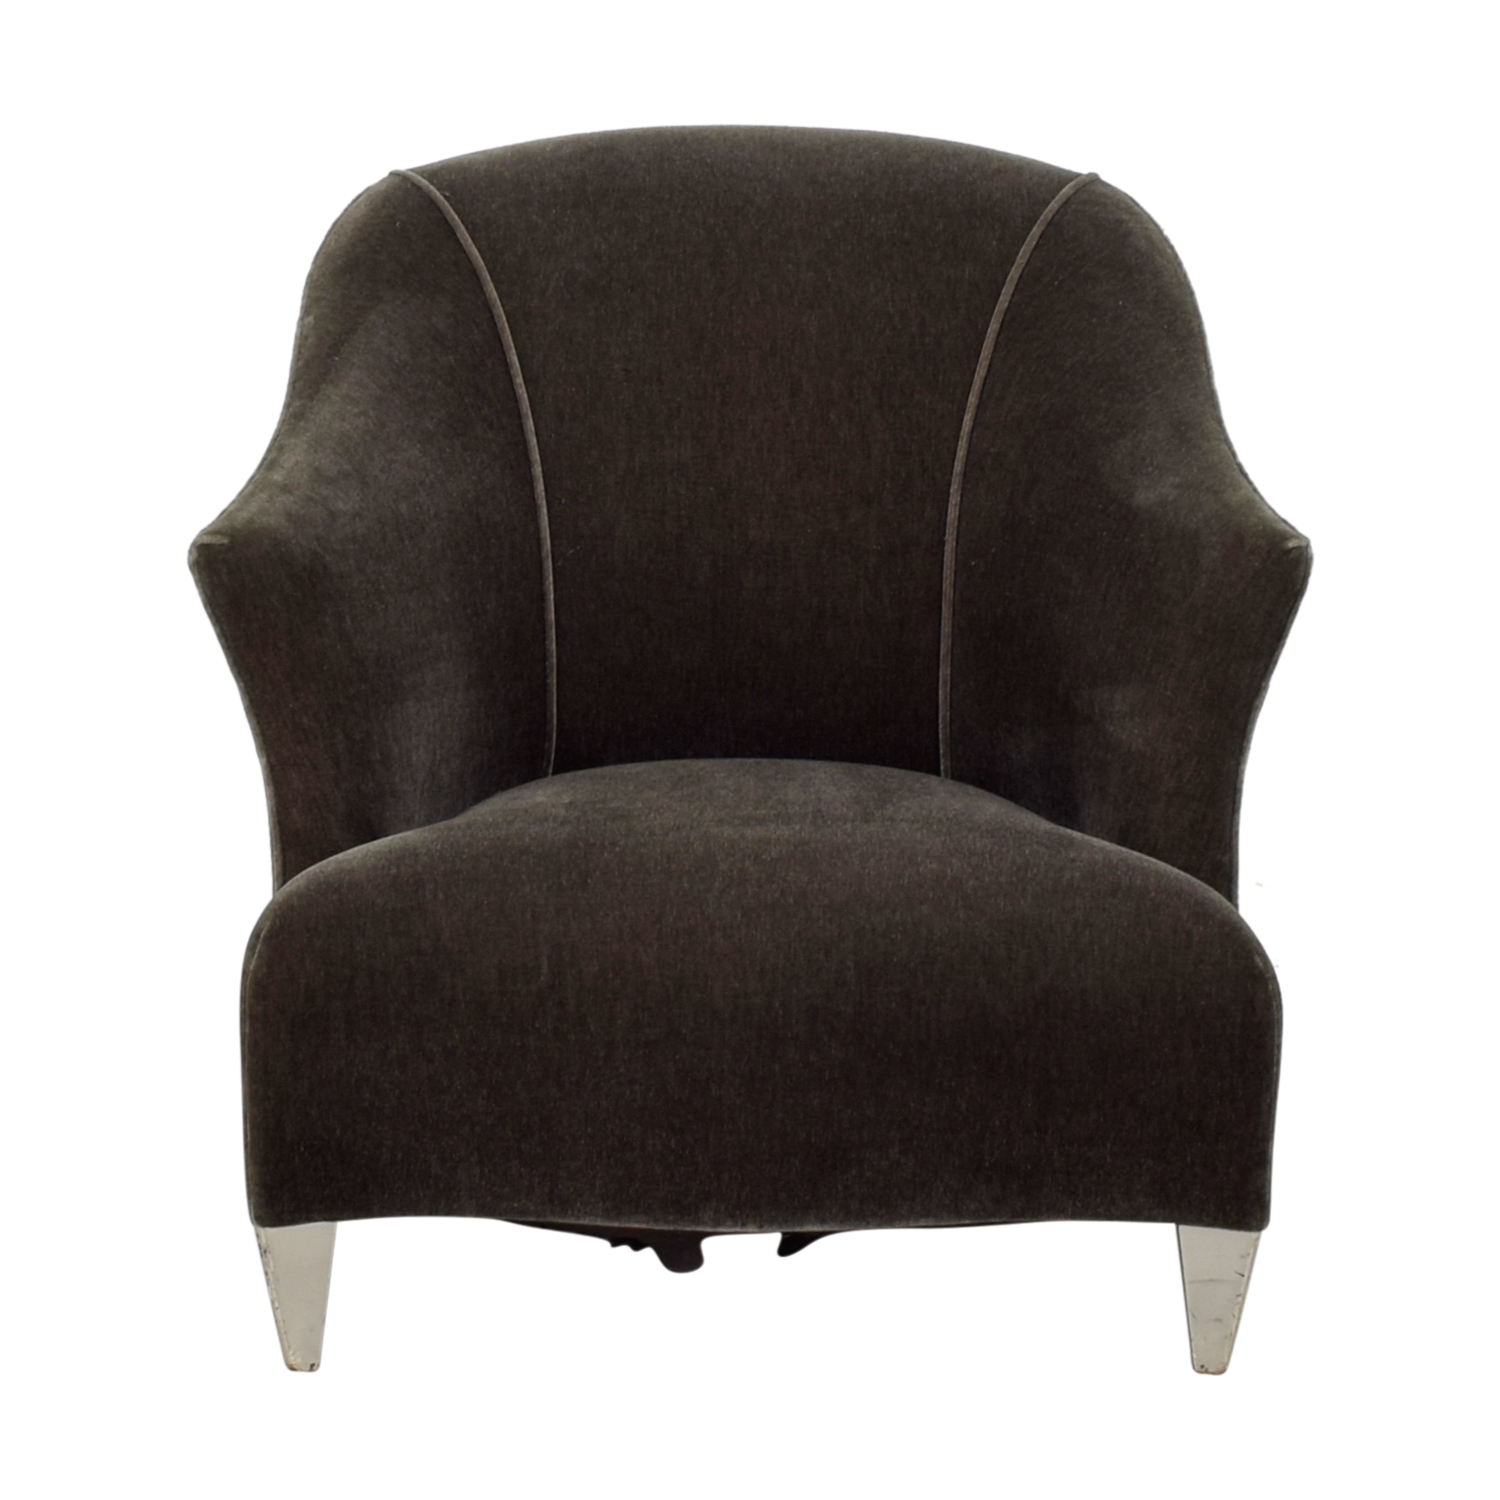 Donghia Shell Charcoal Velour Accent Chair / Chairs